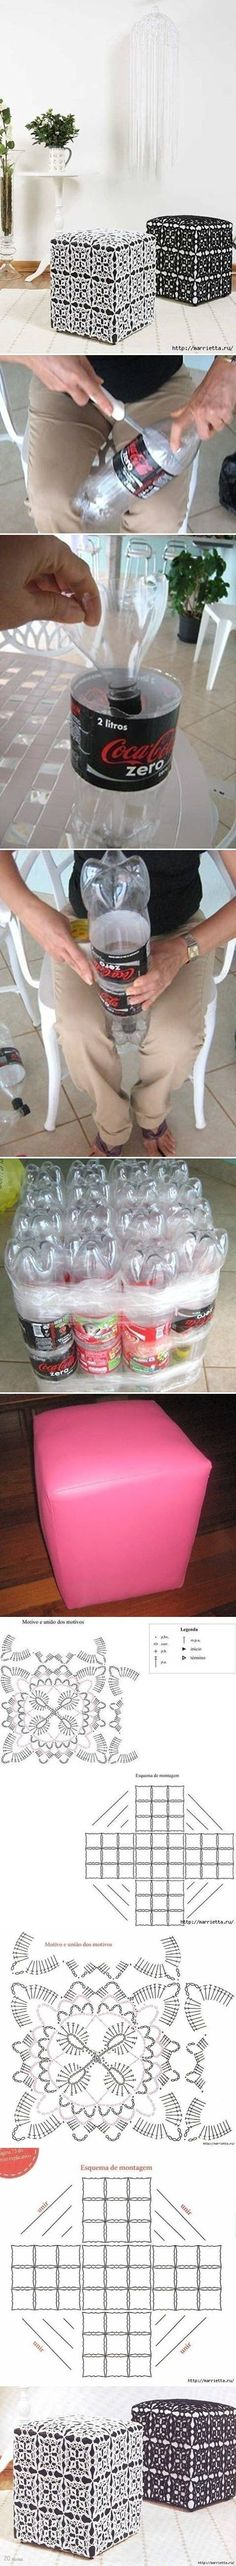 DIY Ottoman Out of Plastic Bottles DIY Ottoman Out of Plastic Bottles by diyforever